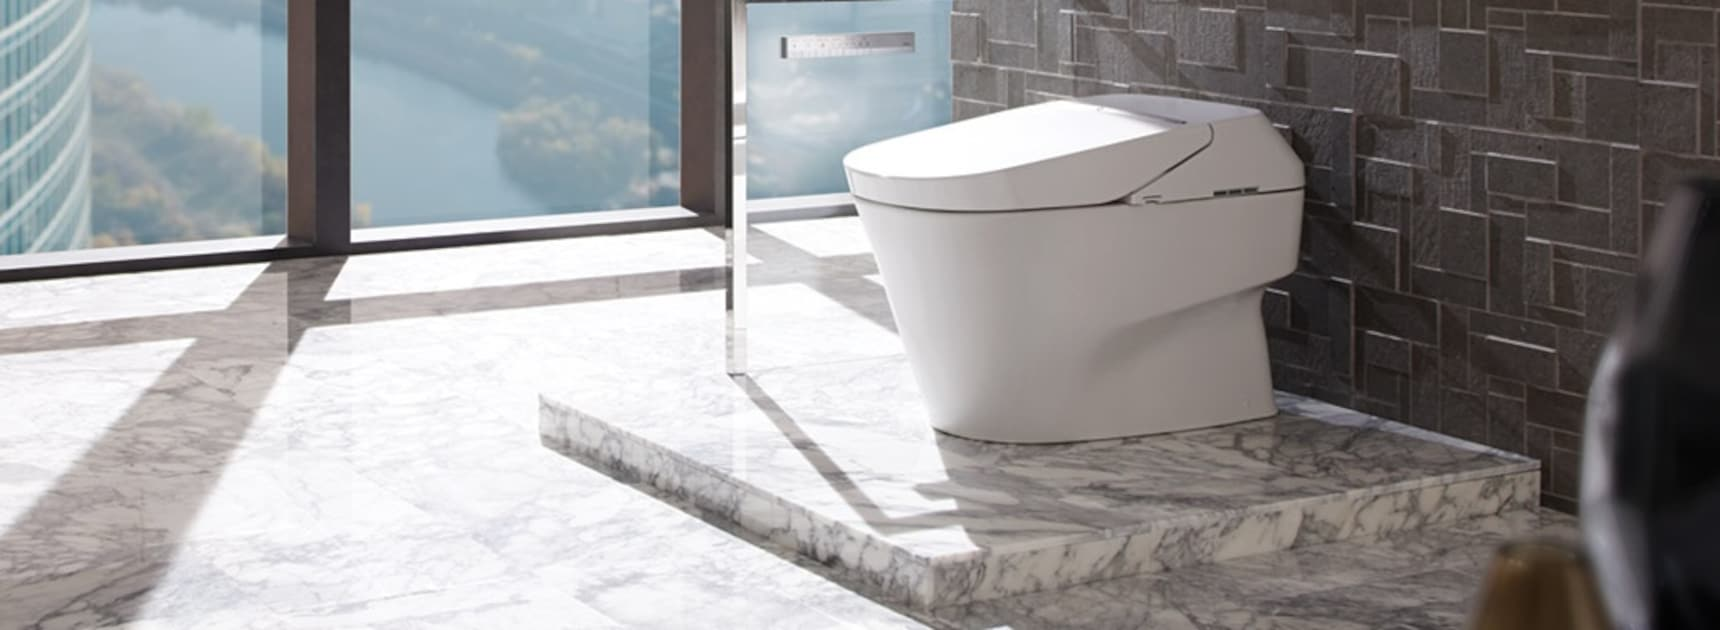 6 Amazing Features of Japanese Toilets